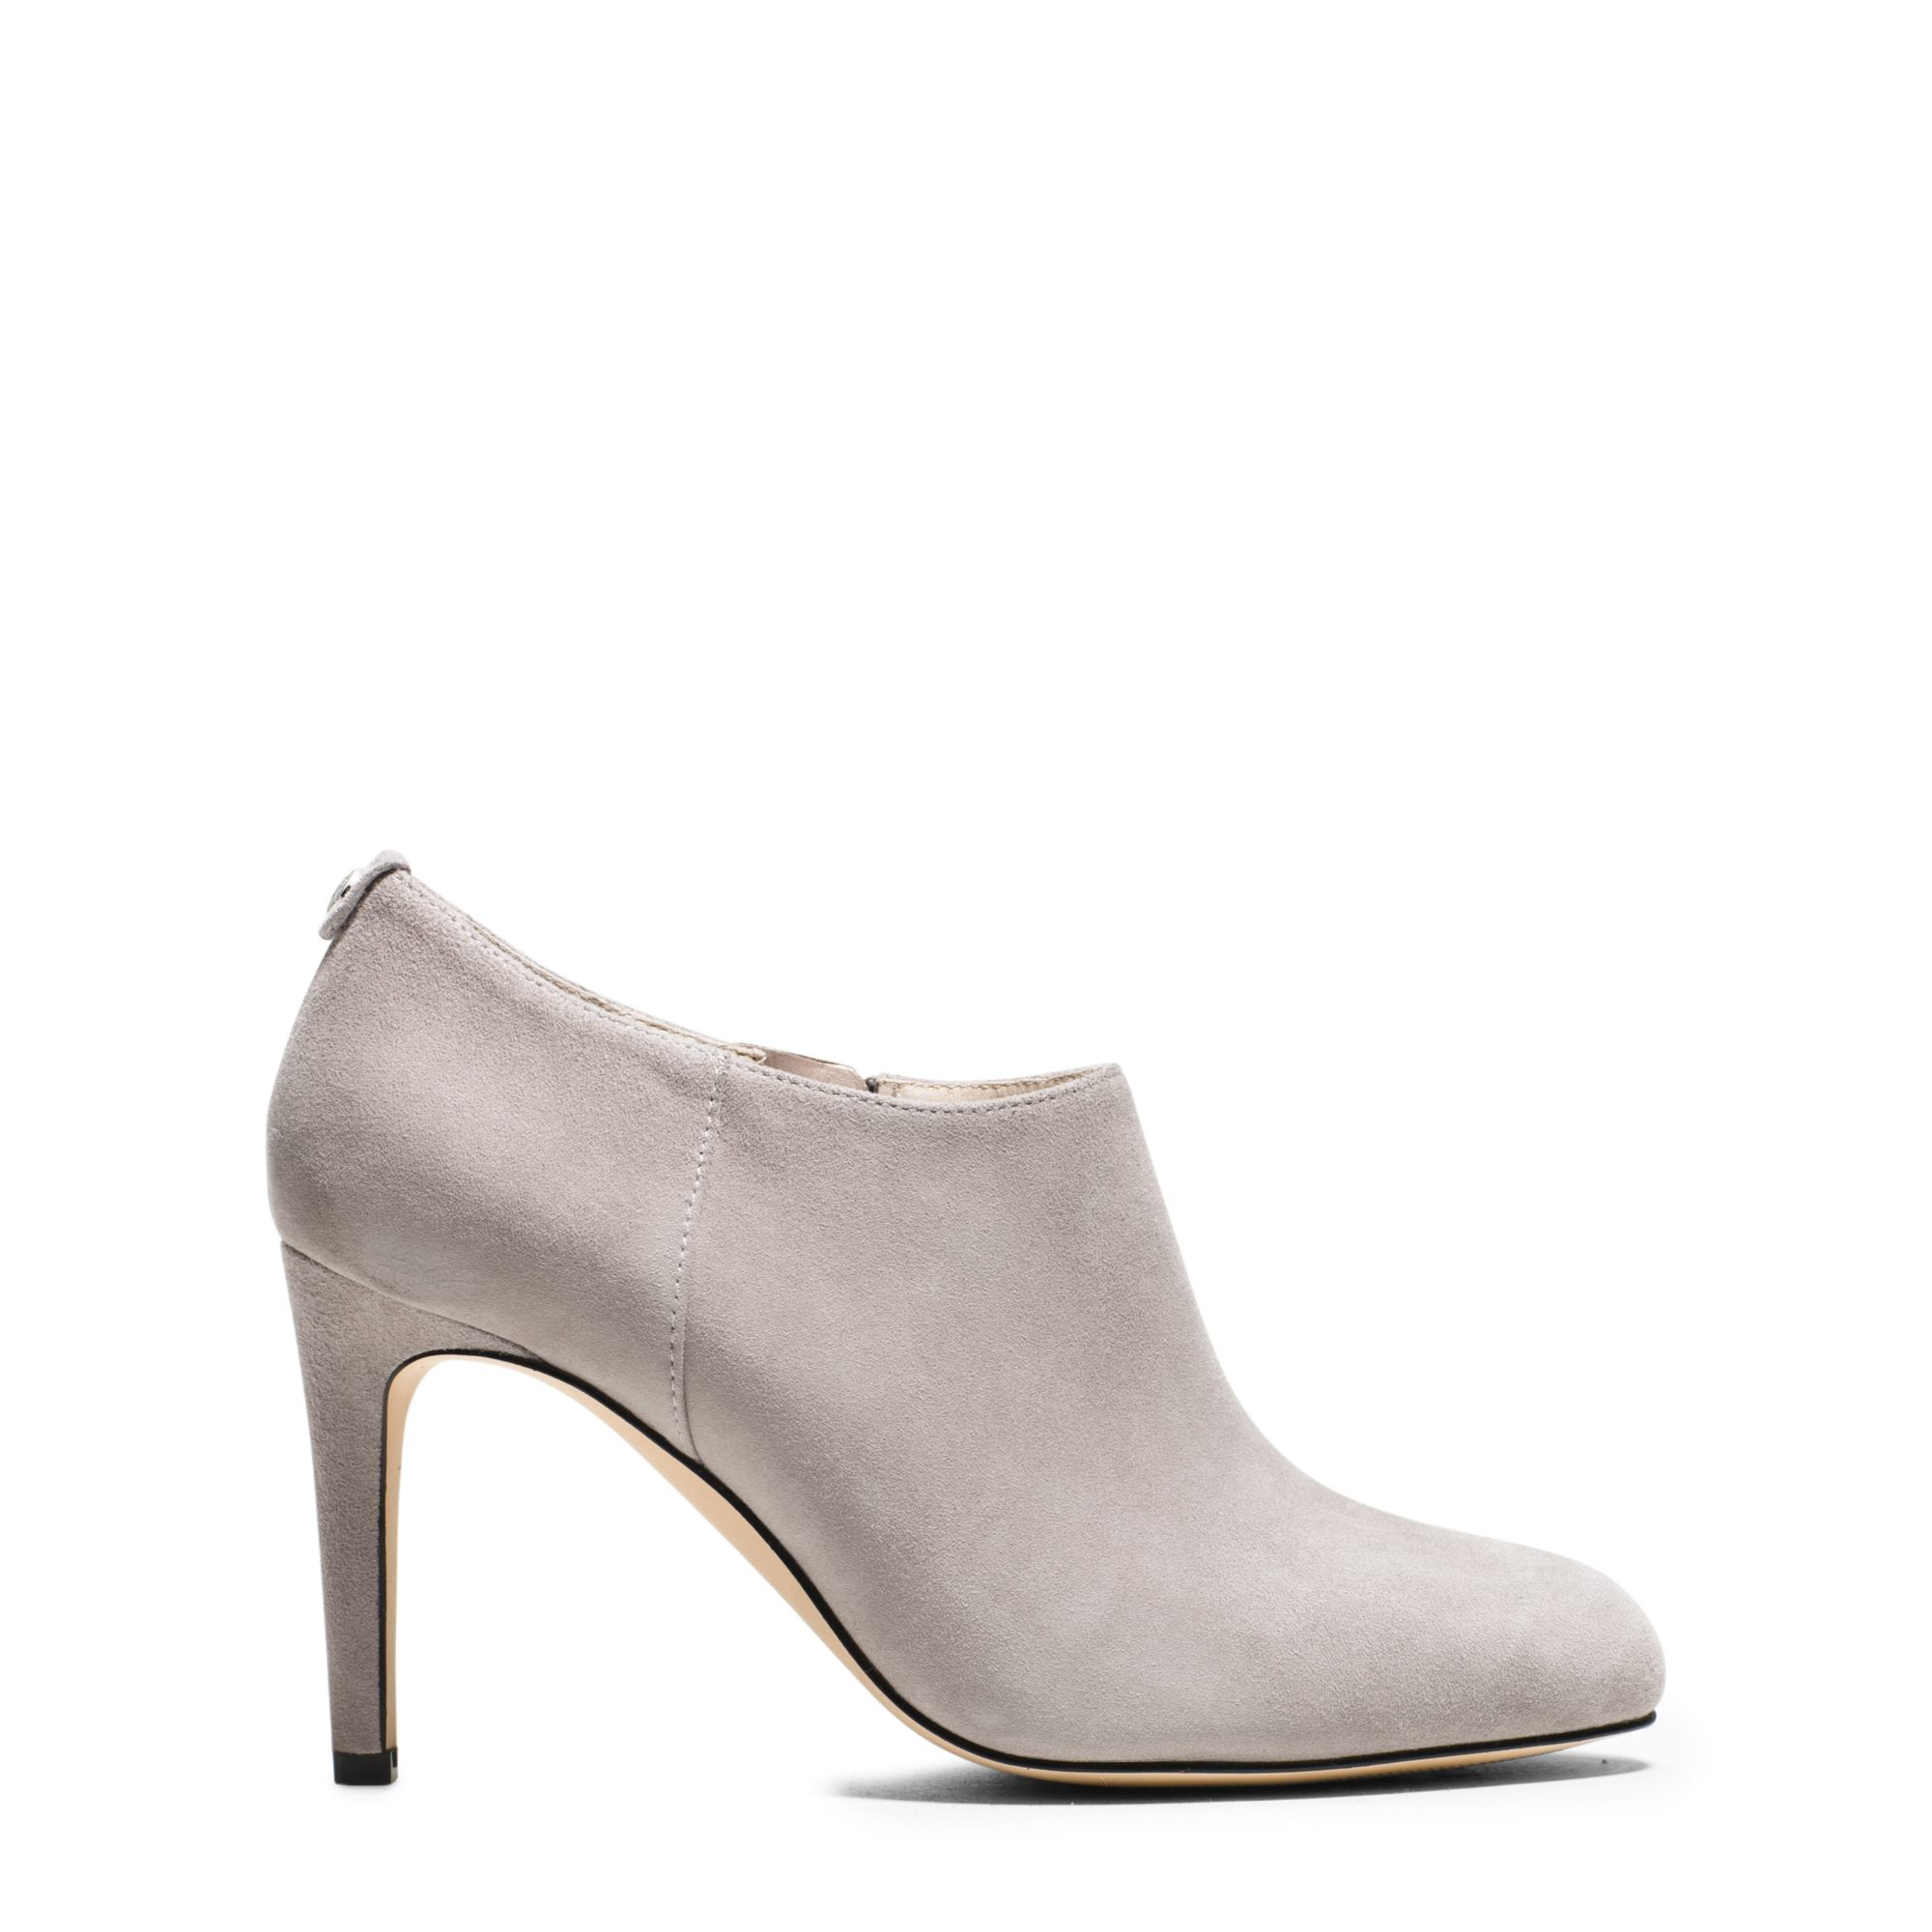 michael kors sammy suede ankle boot in white pearl grey